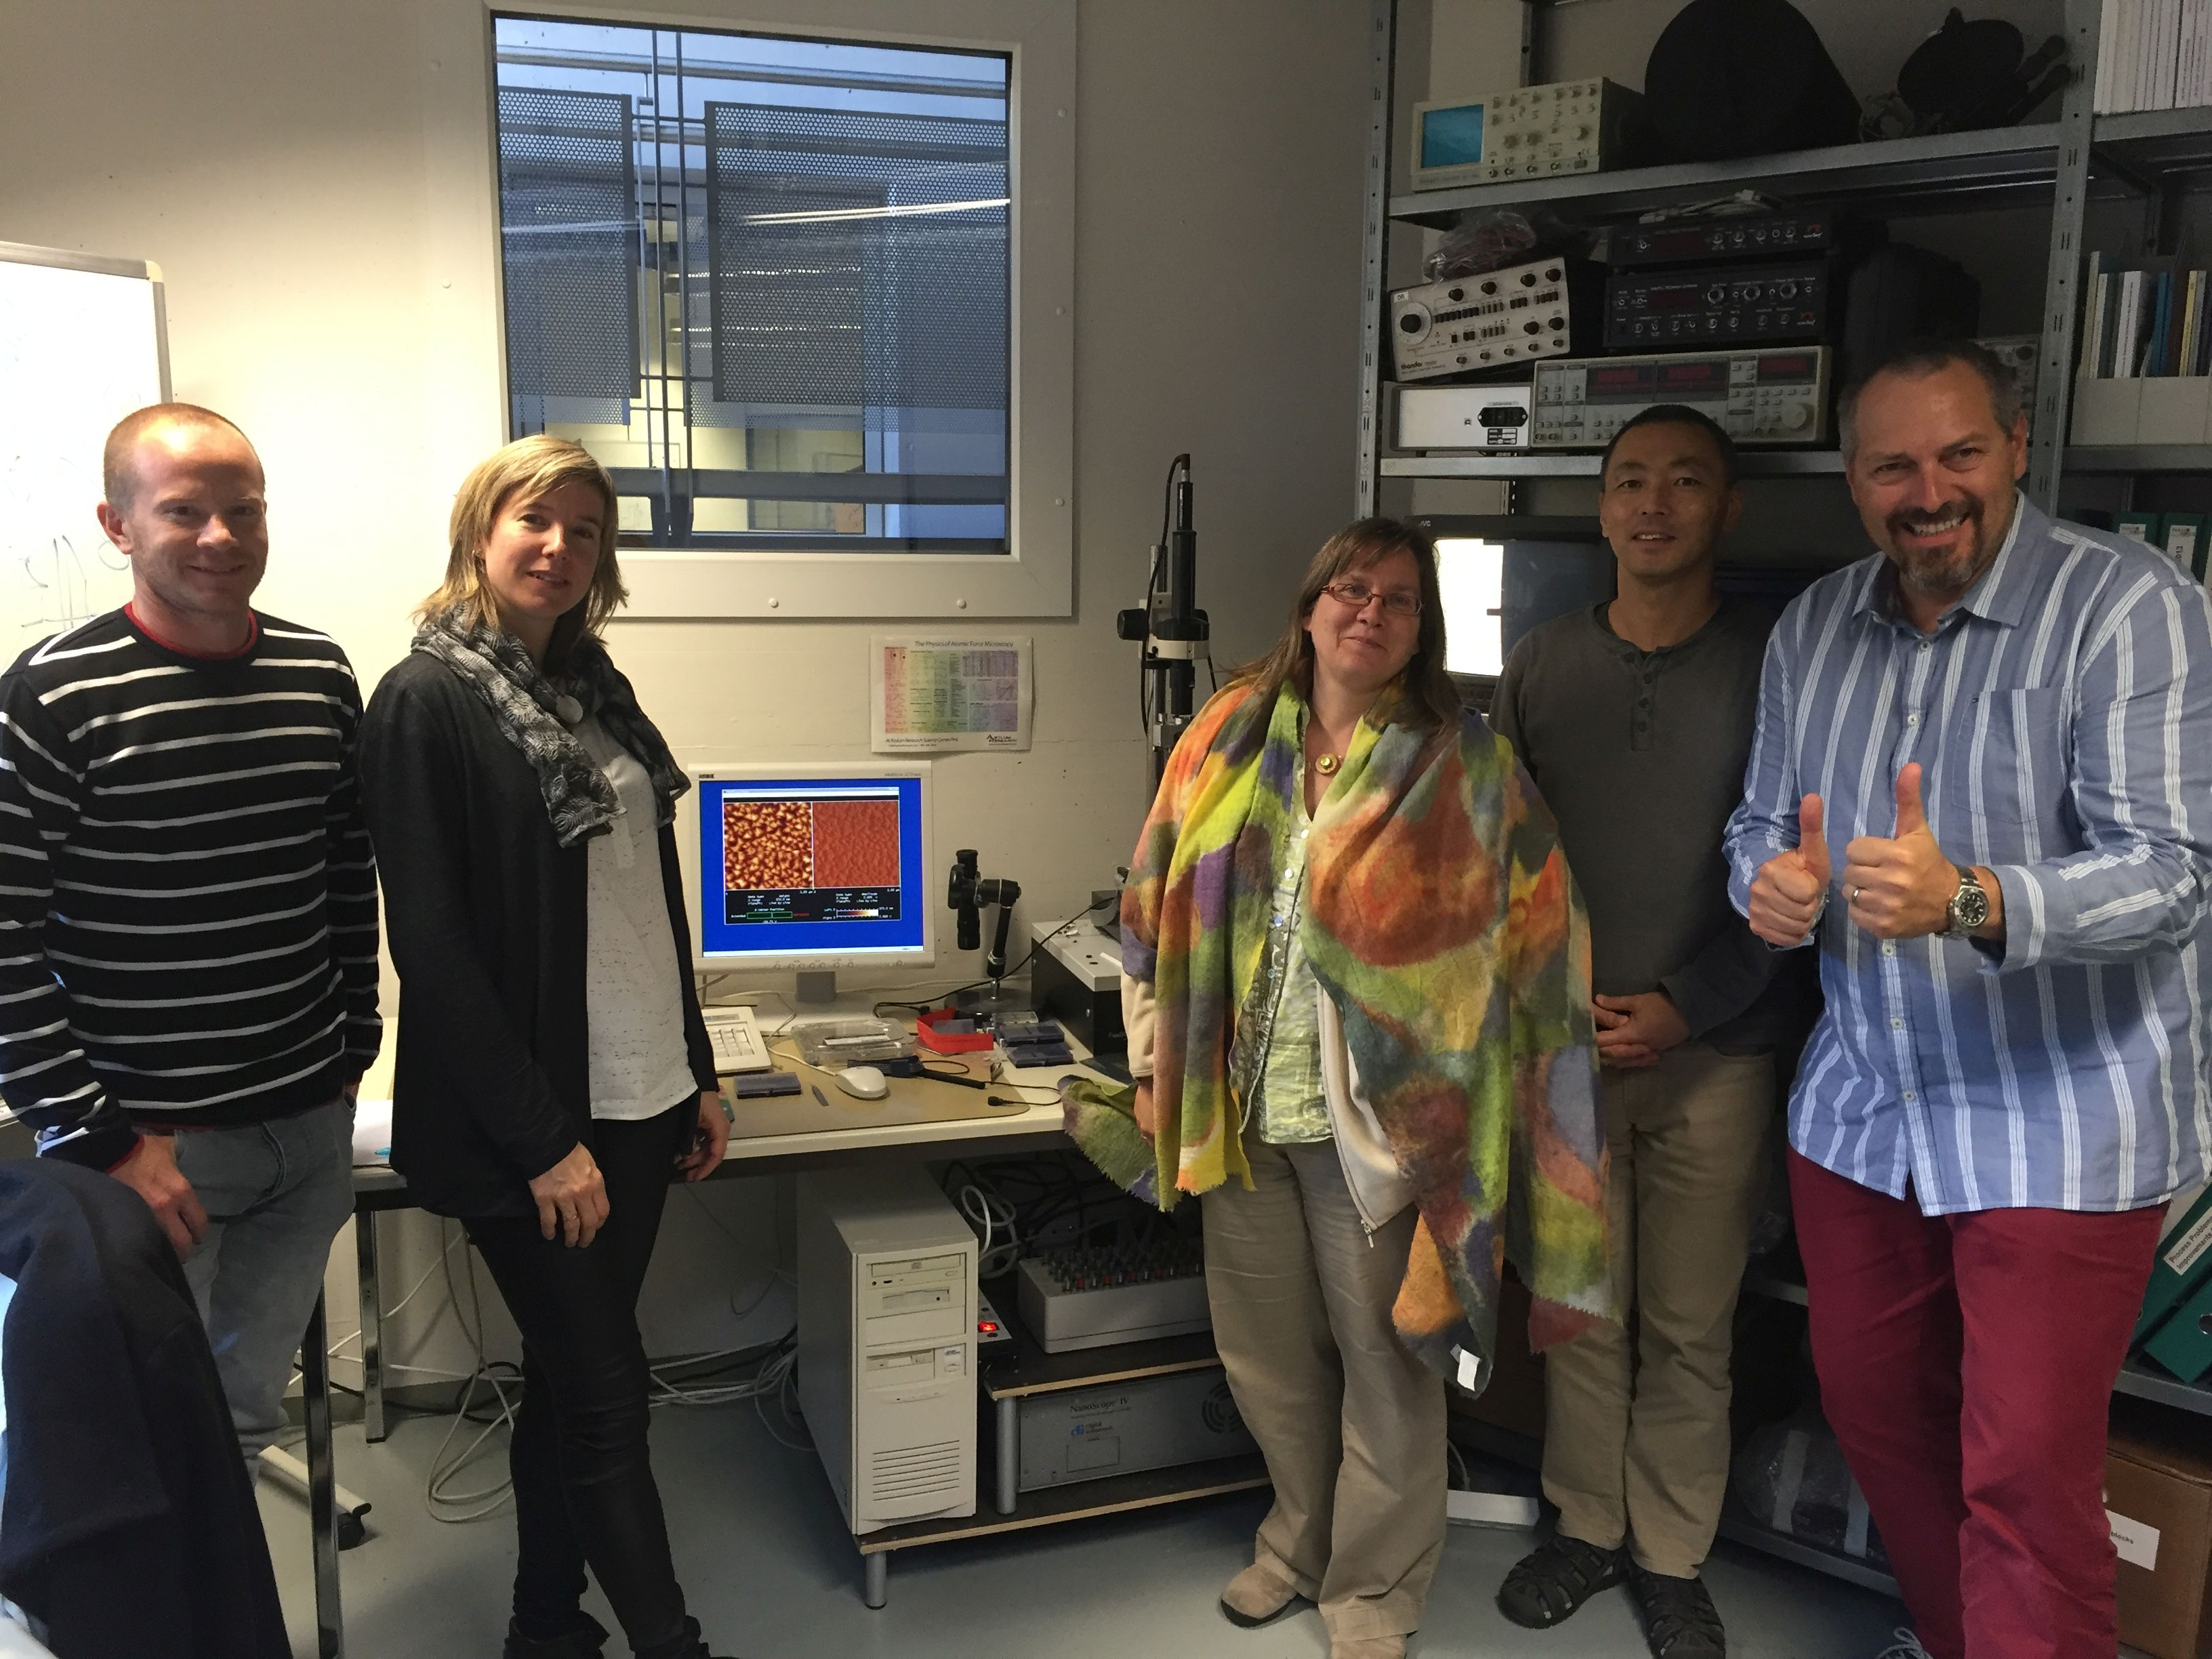 Successful AFM probe prototype testing at NANOSENSORS